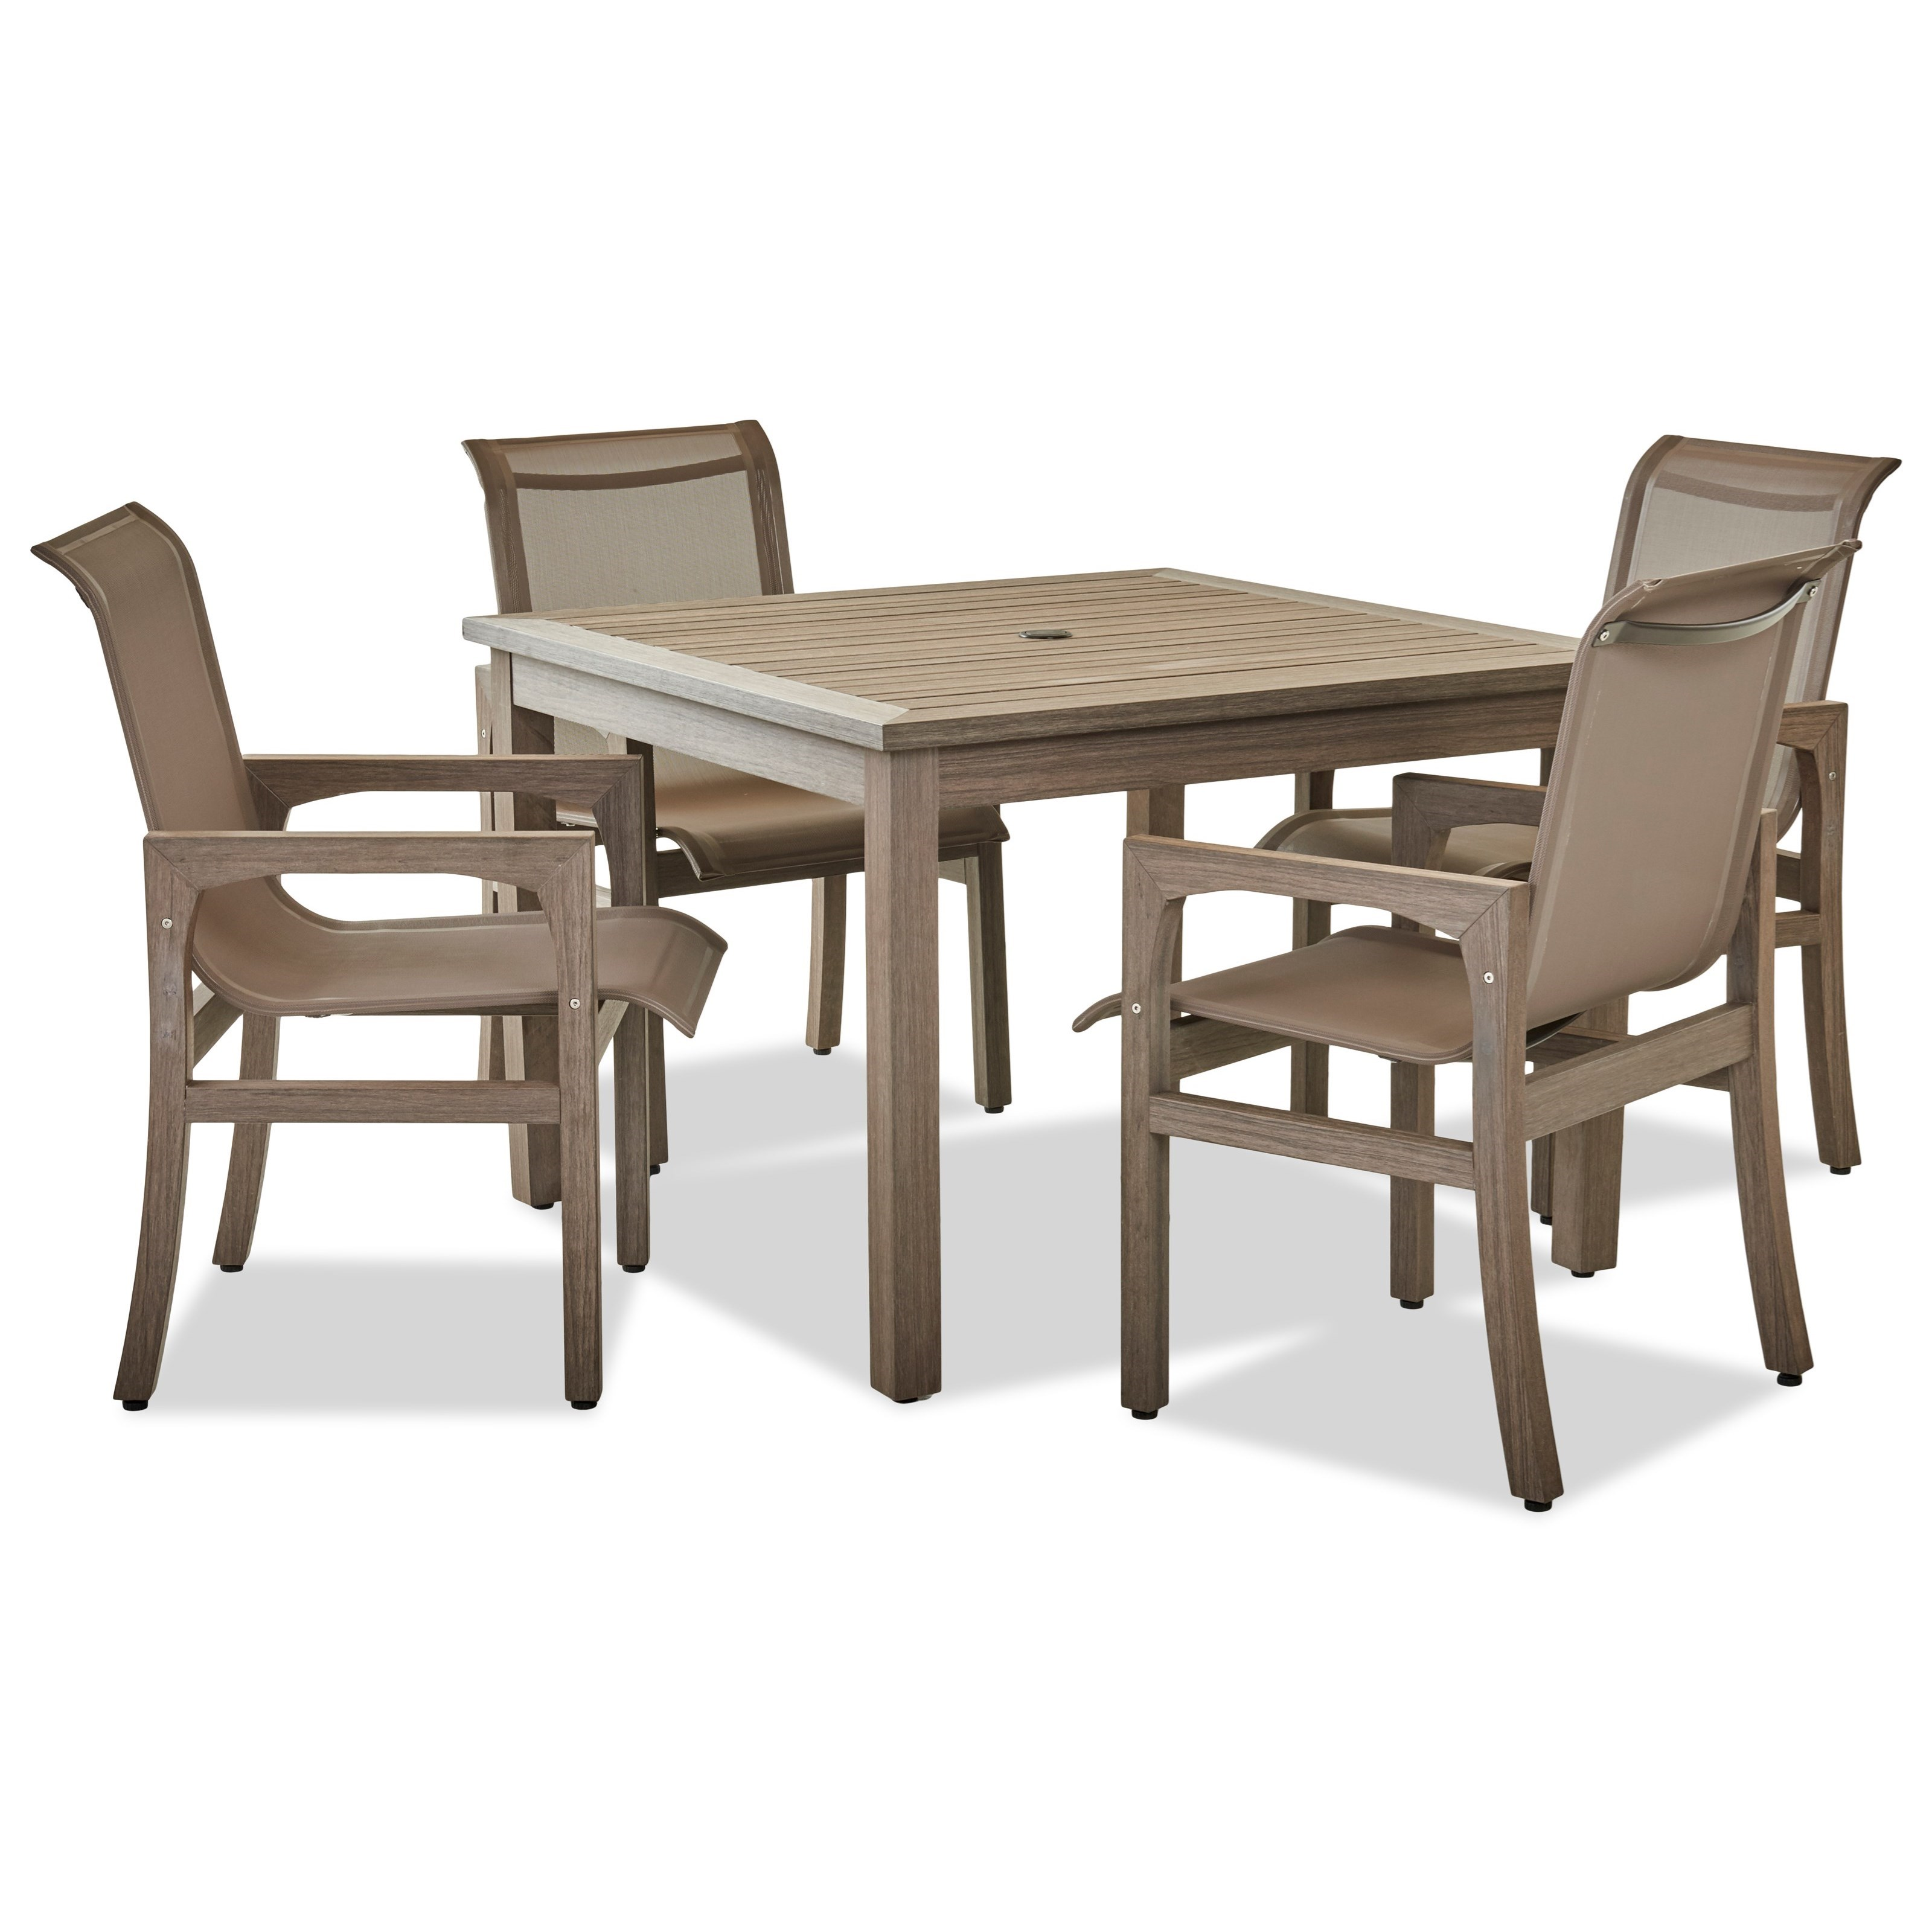 Klaussner Outdoor Delray Outdoor Dining Set With 4 Seats